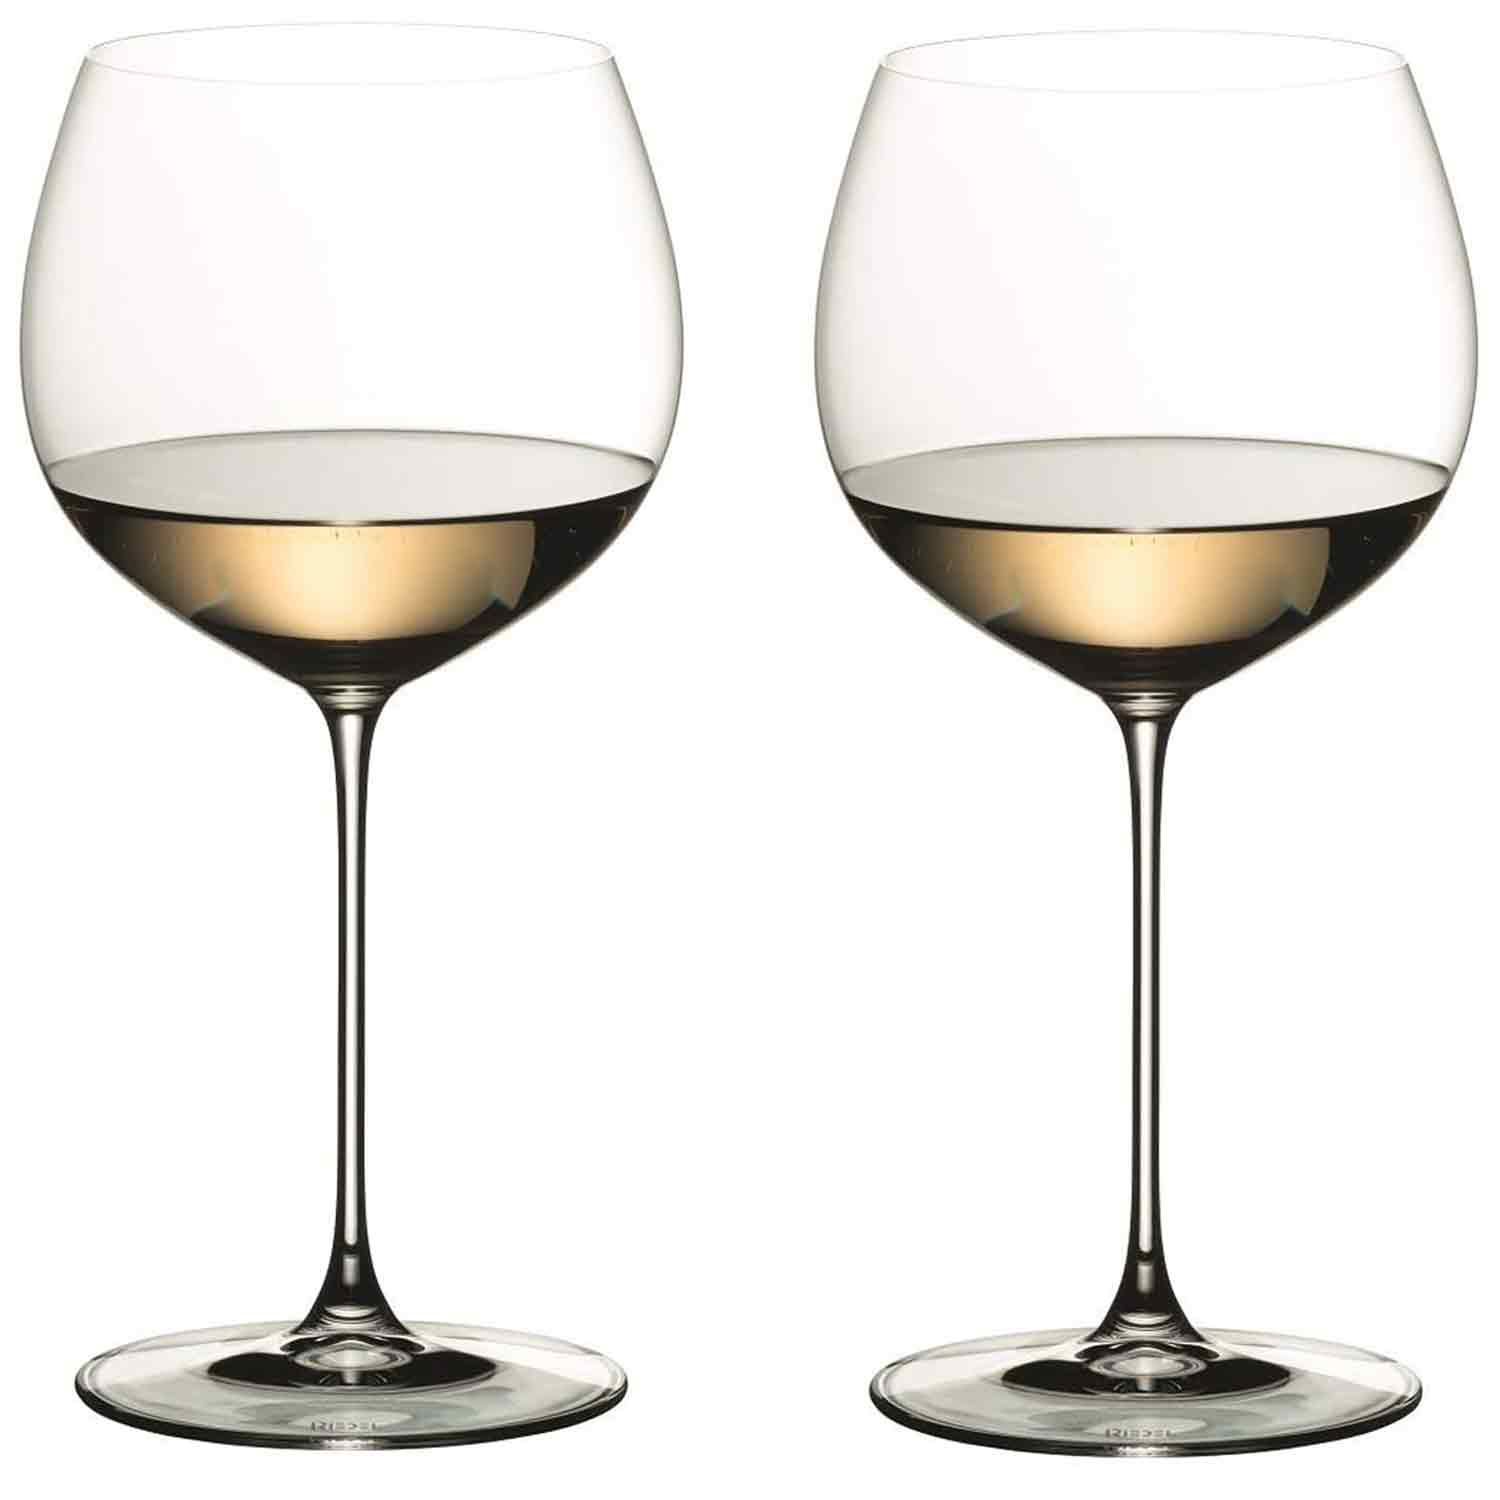 riedel veritas oaked chardonnay glass